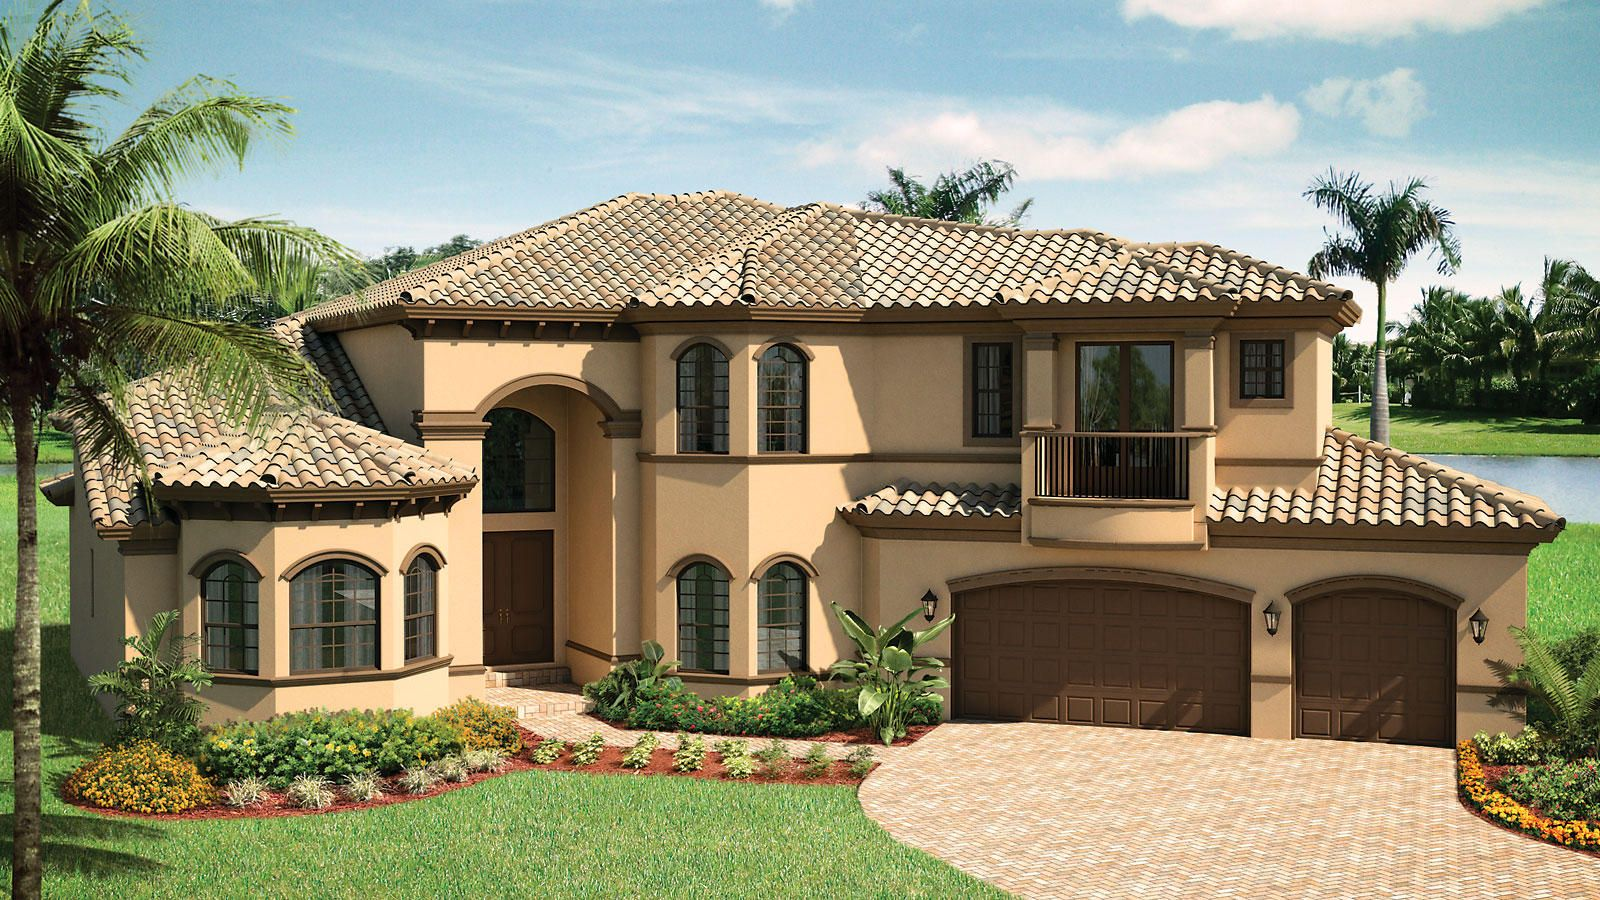 Roofing Contractors Palm Beach Gardens We Are The Best Roofing Roof Repair Contractors In Palm Be Downtown West Palm Beach Palm Beach West Palm Beach Florida